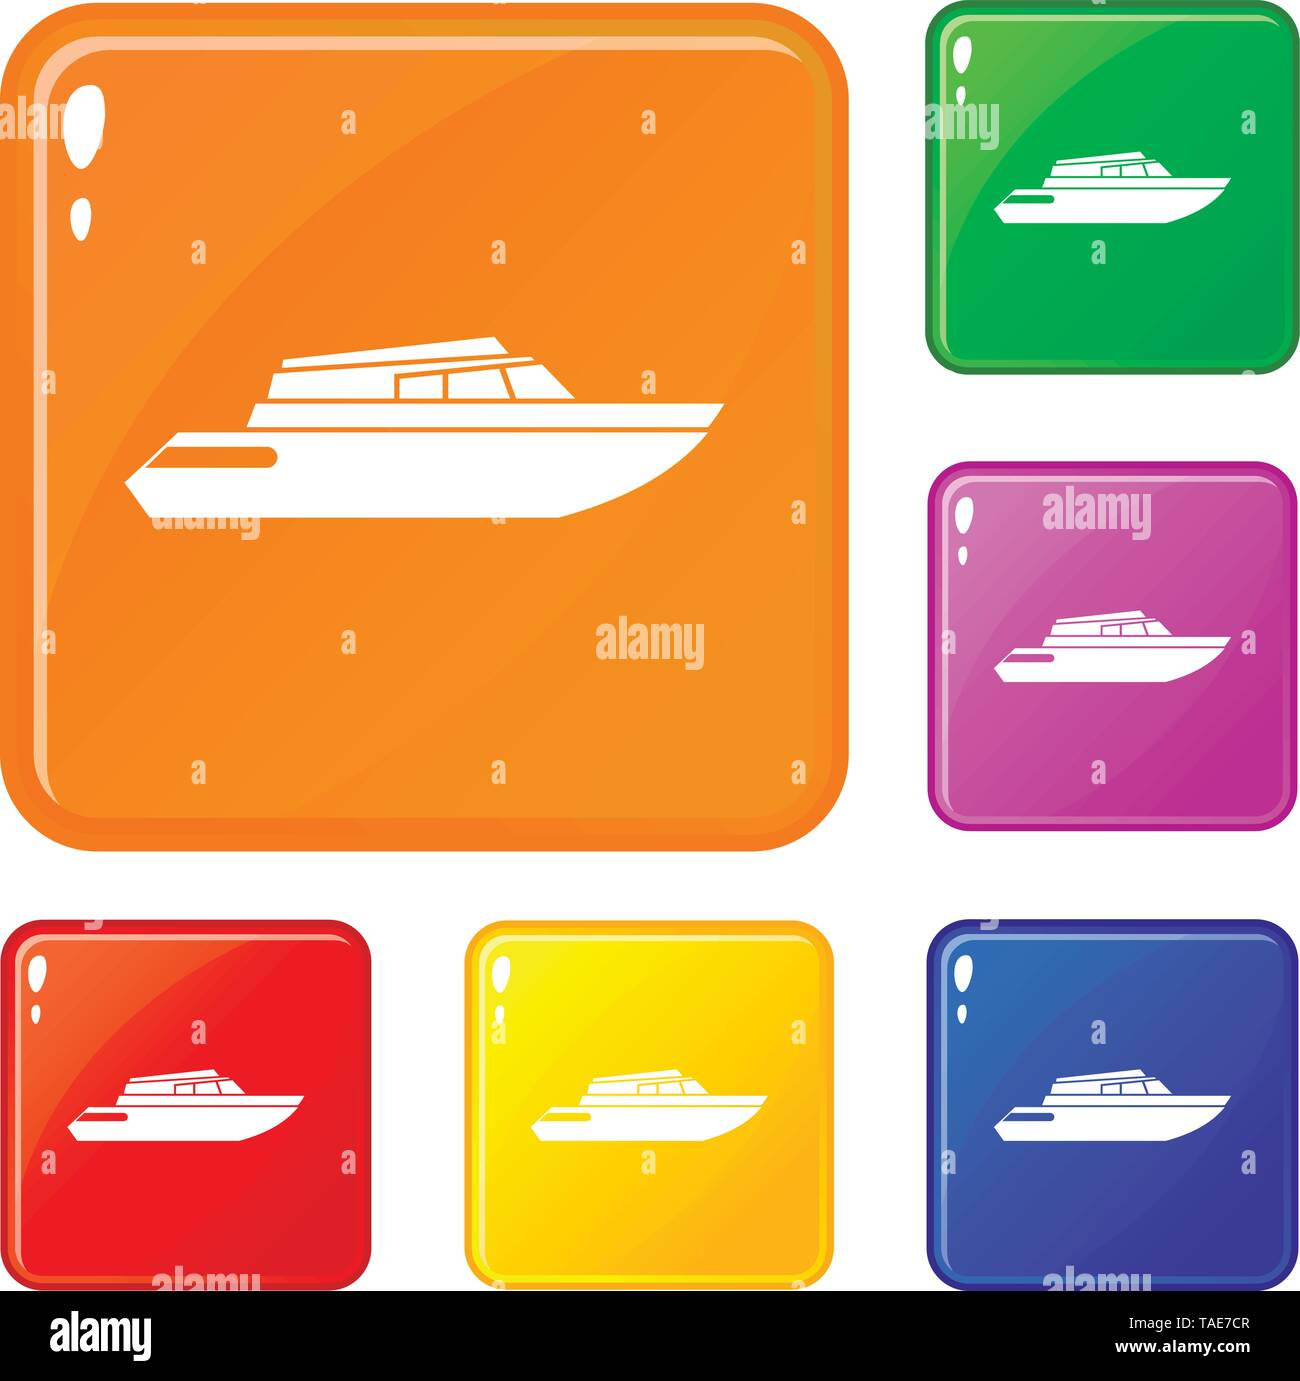 Planing powerboat icons set vector color - Stock Image